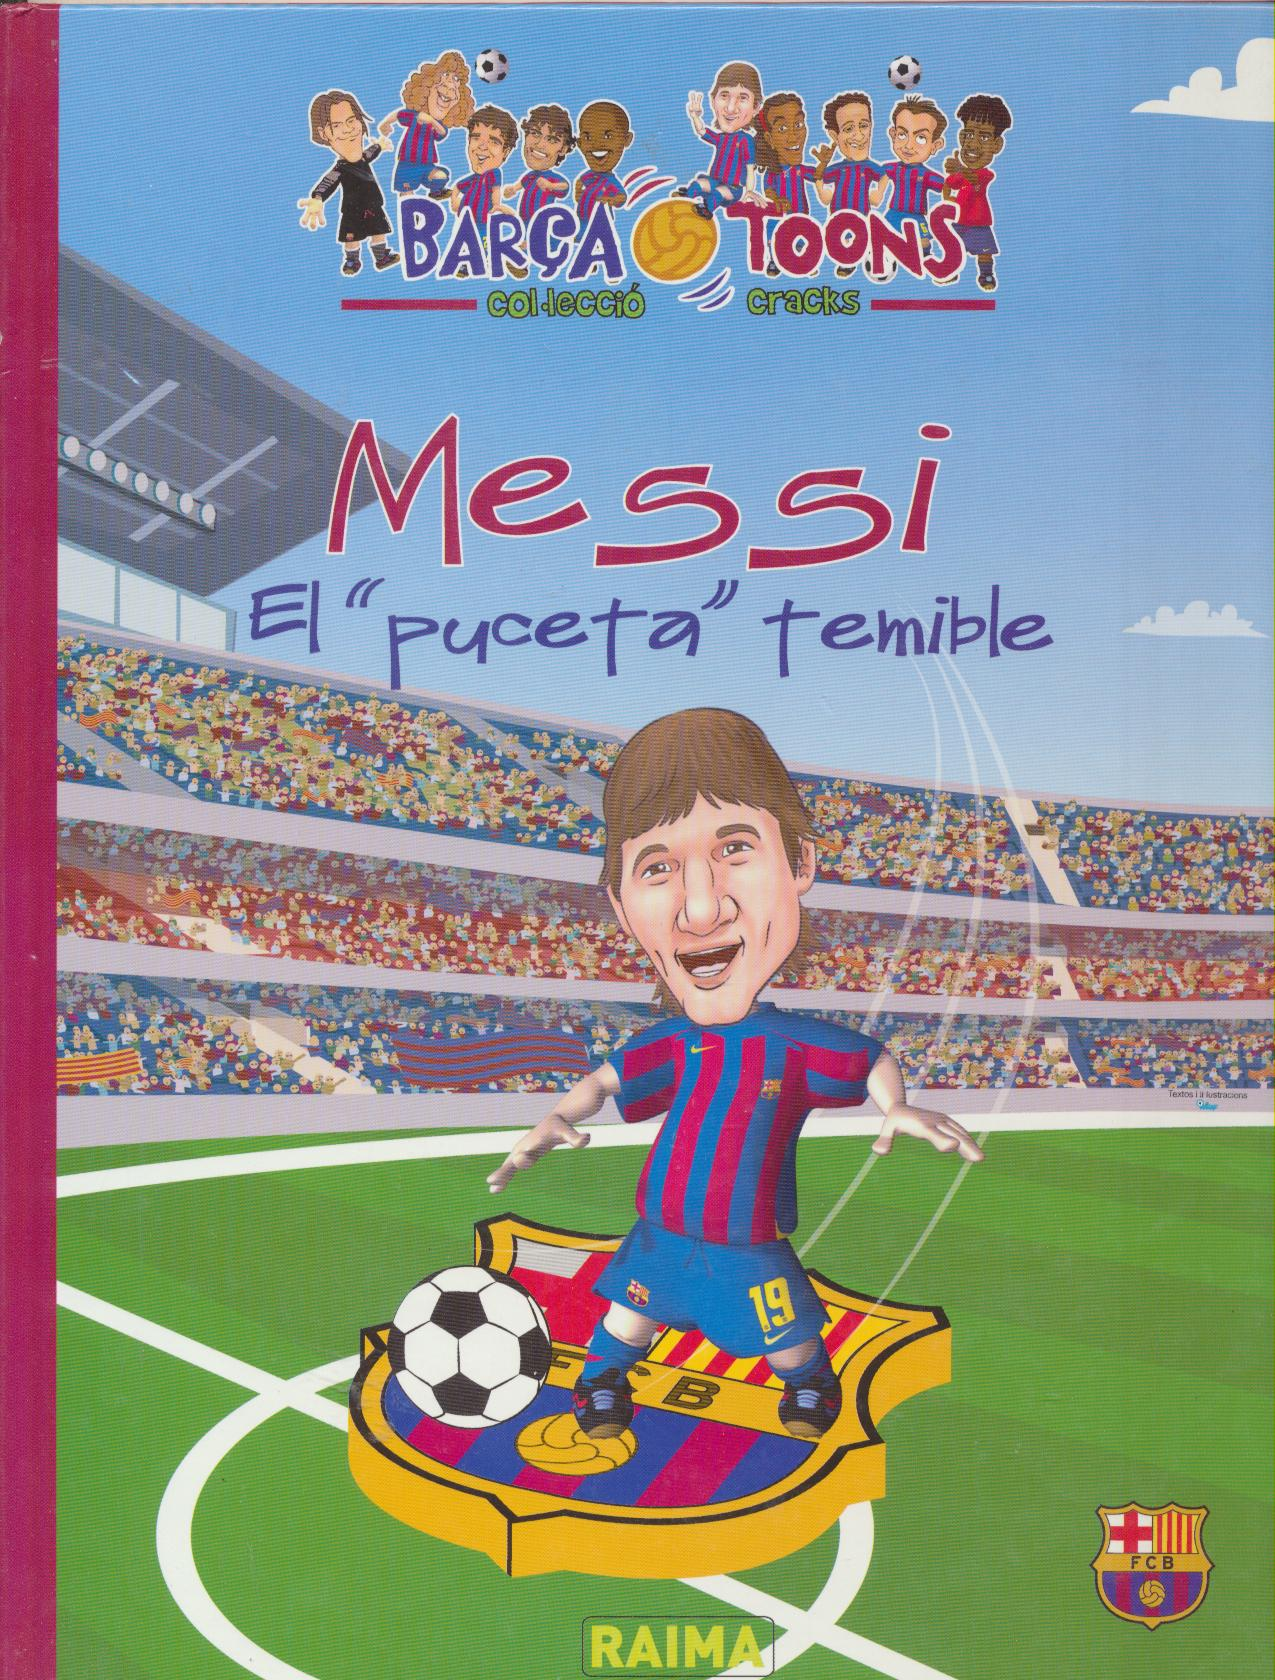 Messi El Puceta temible. Rama Editions 2006